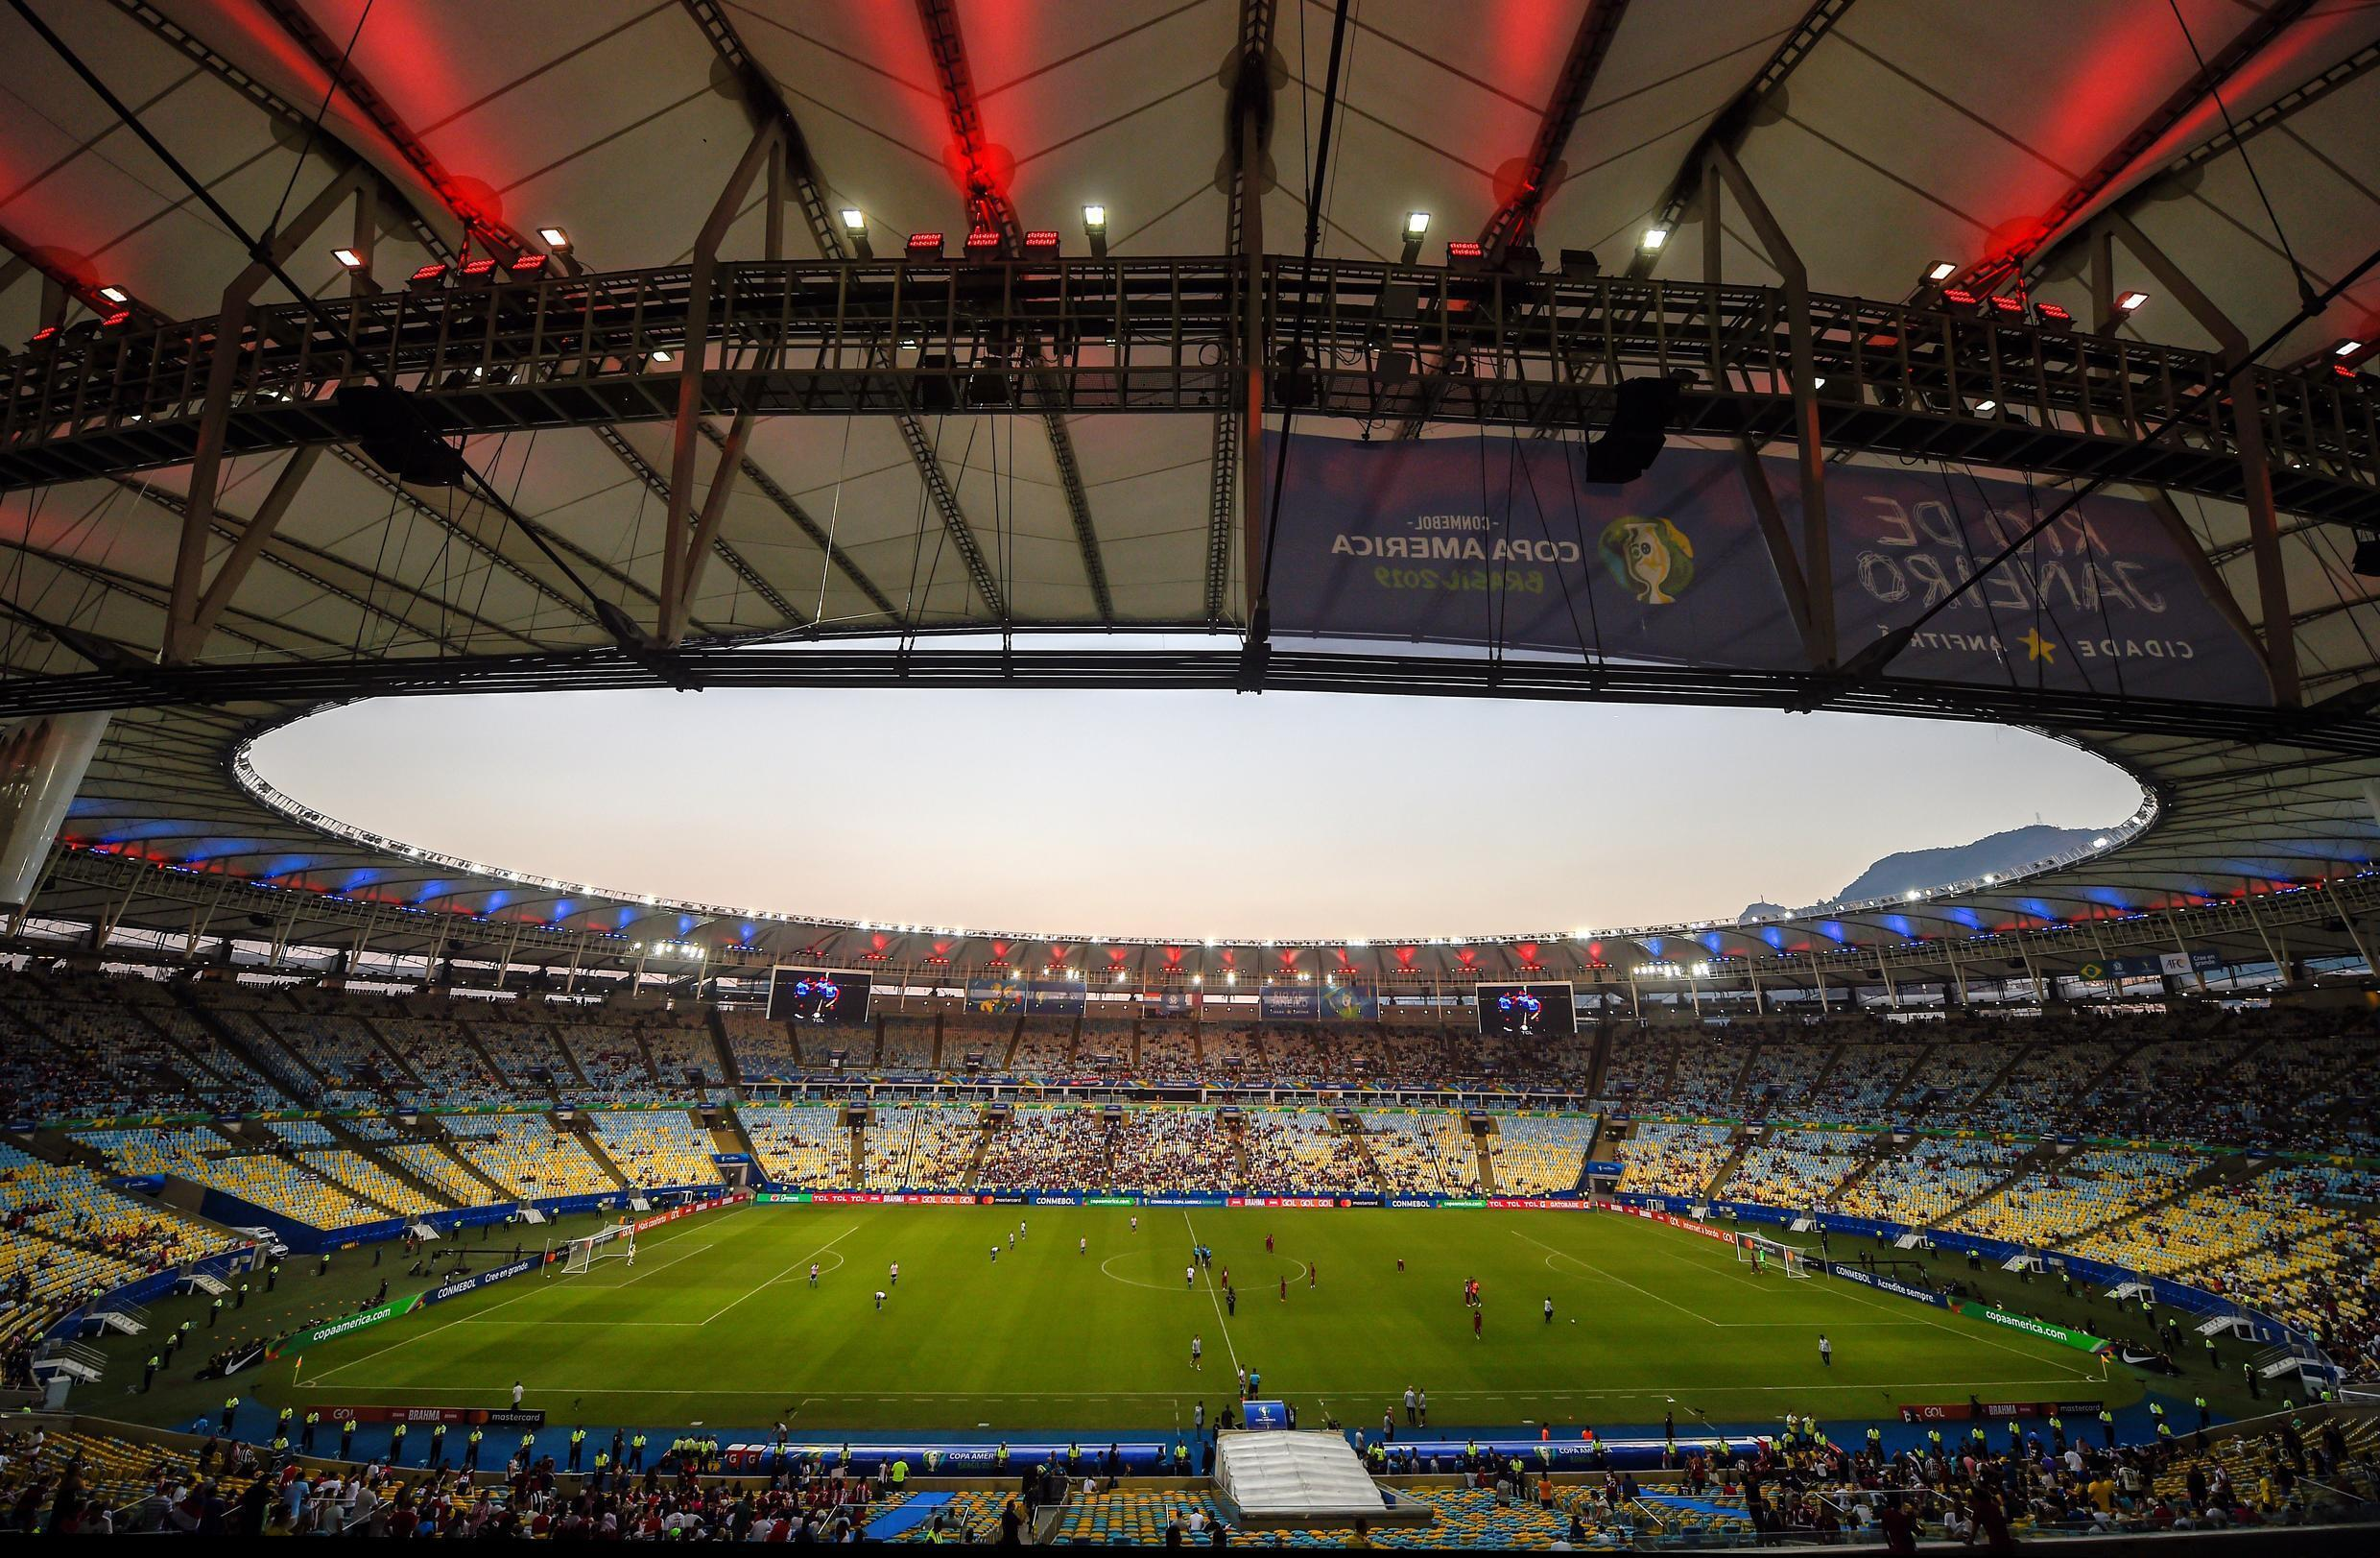 The Maracana, which hosted the finals of the 1950 and 2014 football World Cups, could be renamed after the legendary Brazilian player Pélé.